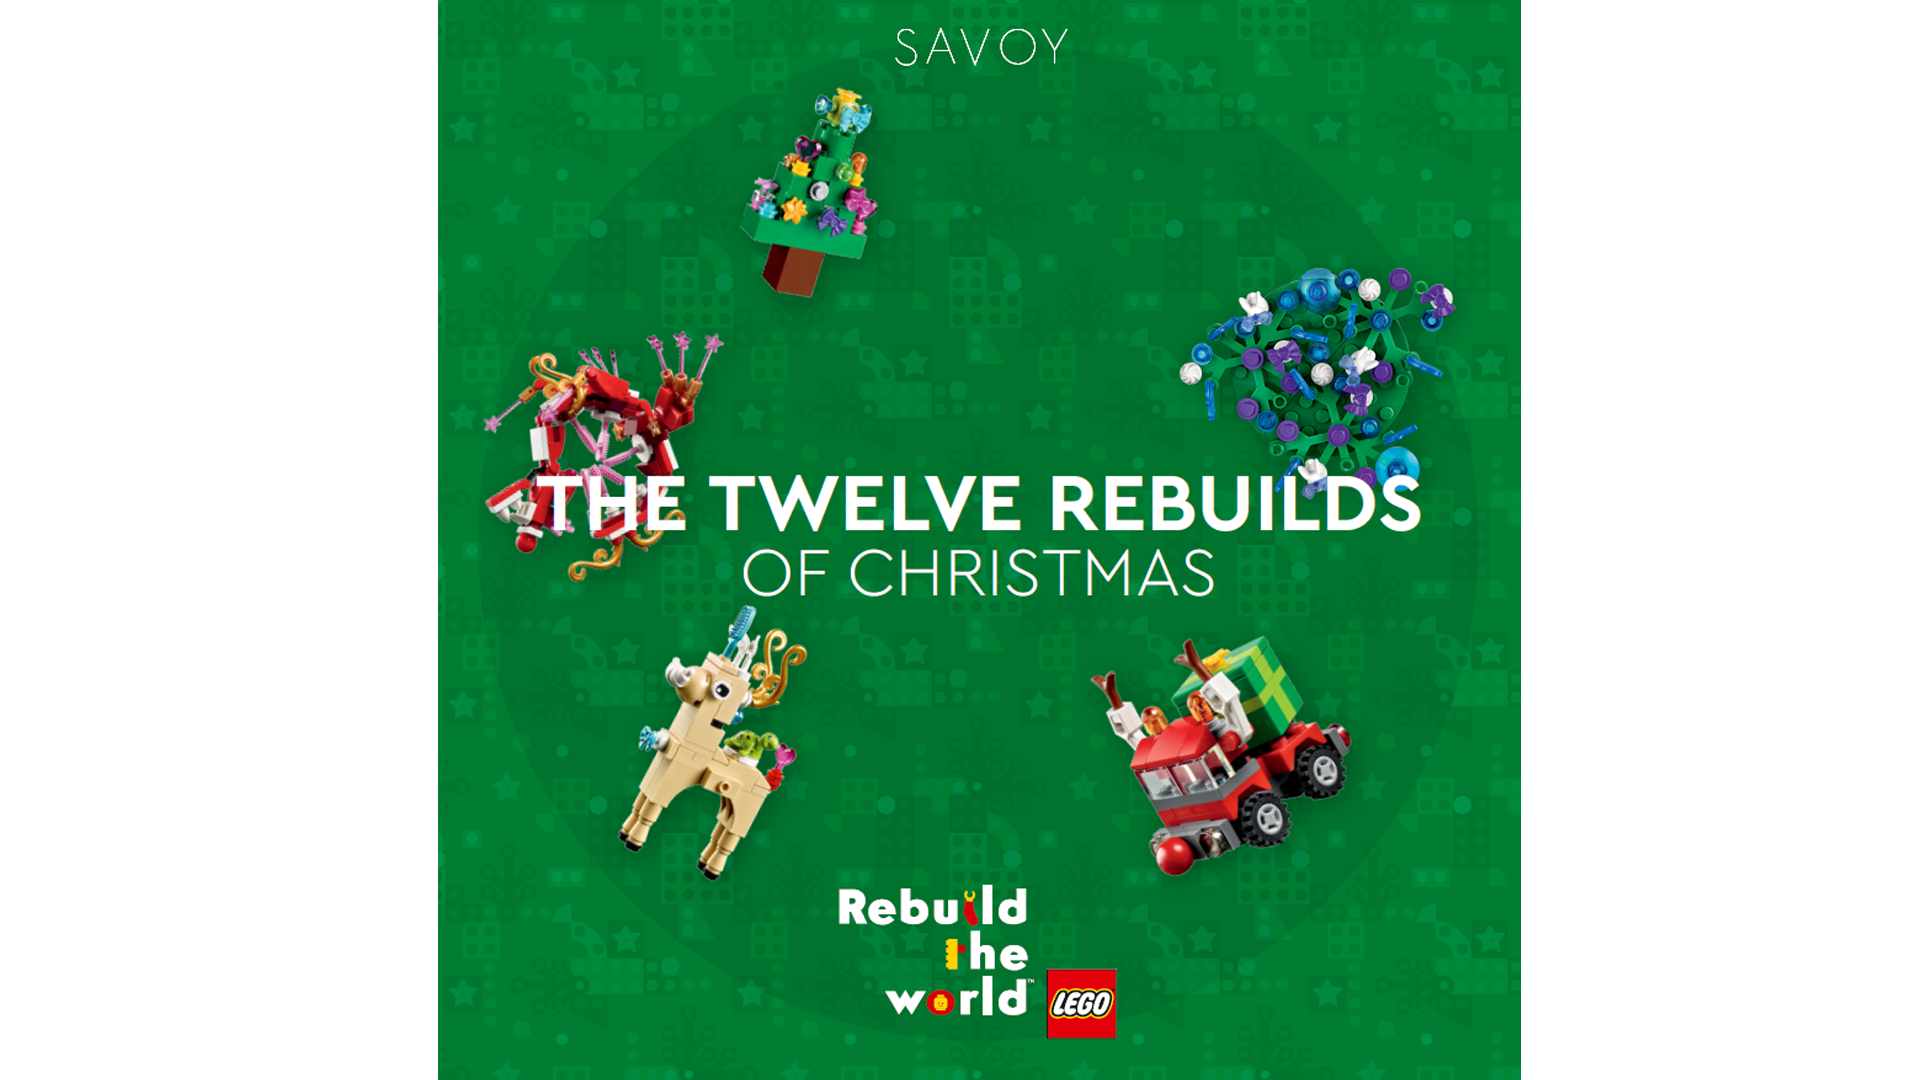 The Savoy and The LEGO Group Christmas